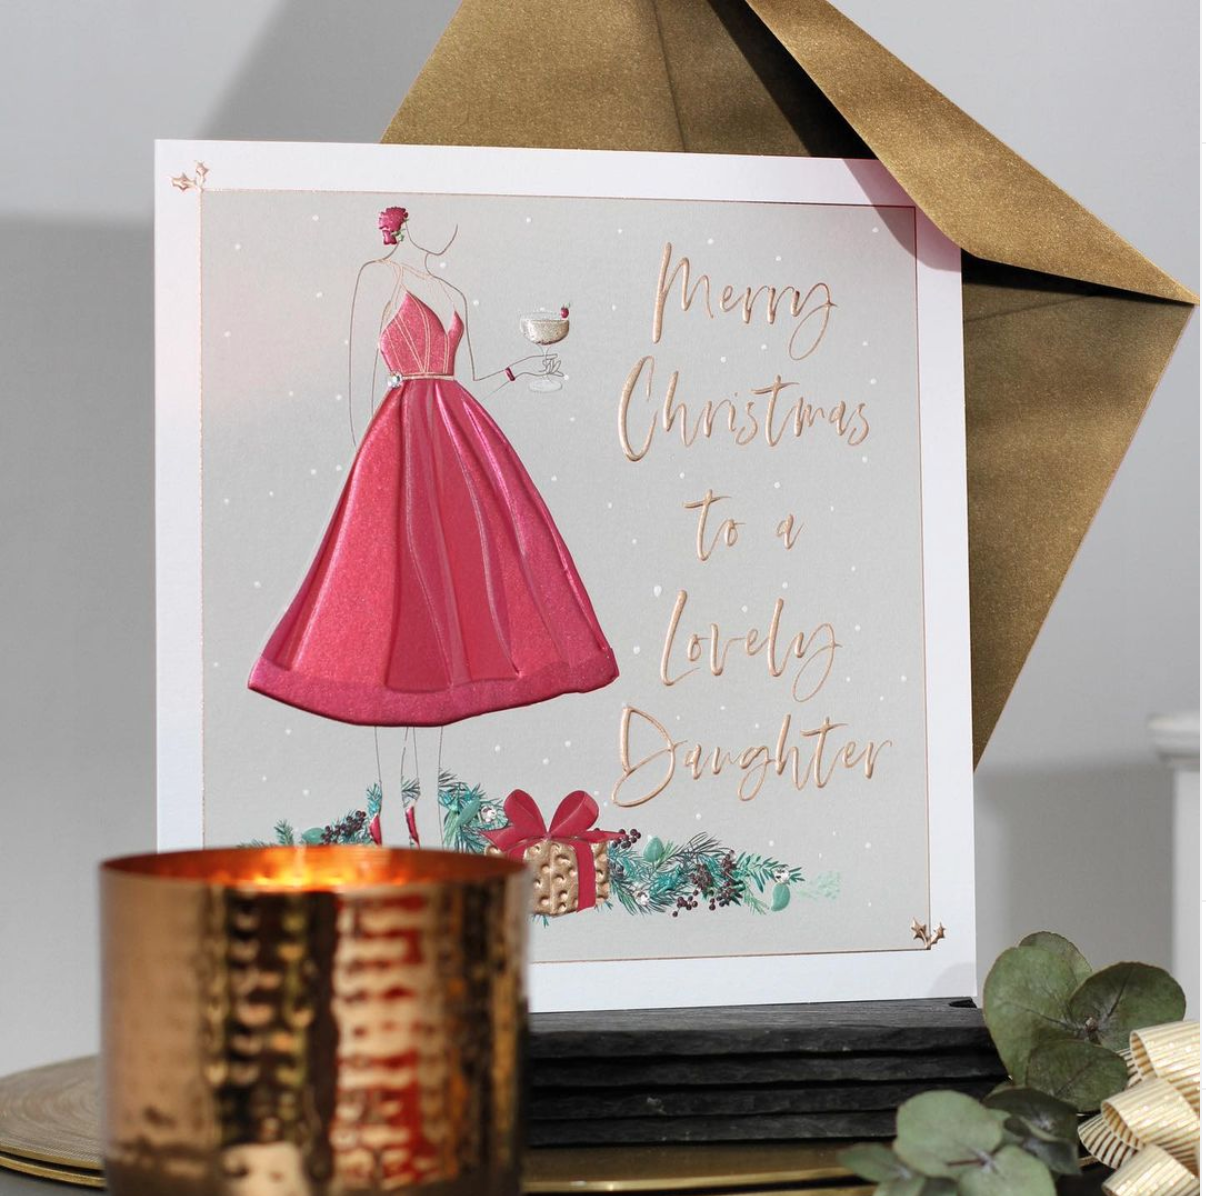 Above: Belly Button Designs' cards were among Box of Delights' best sellers.